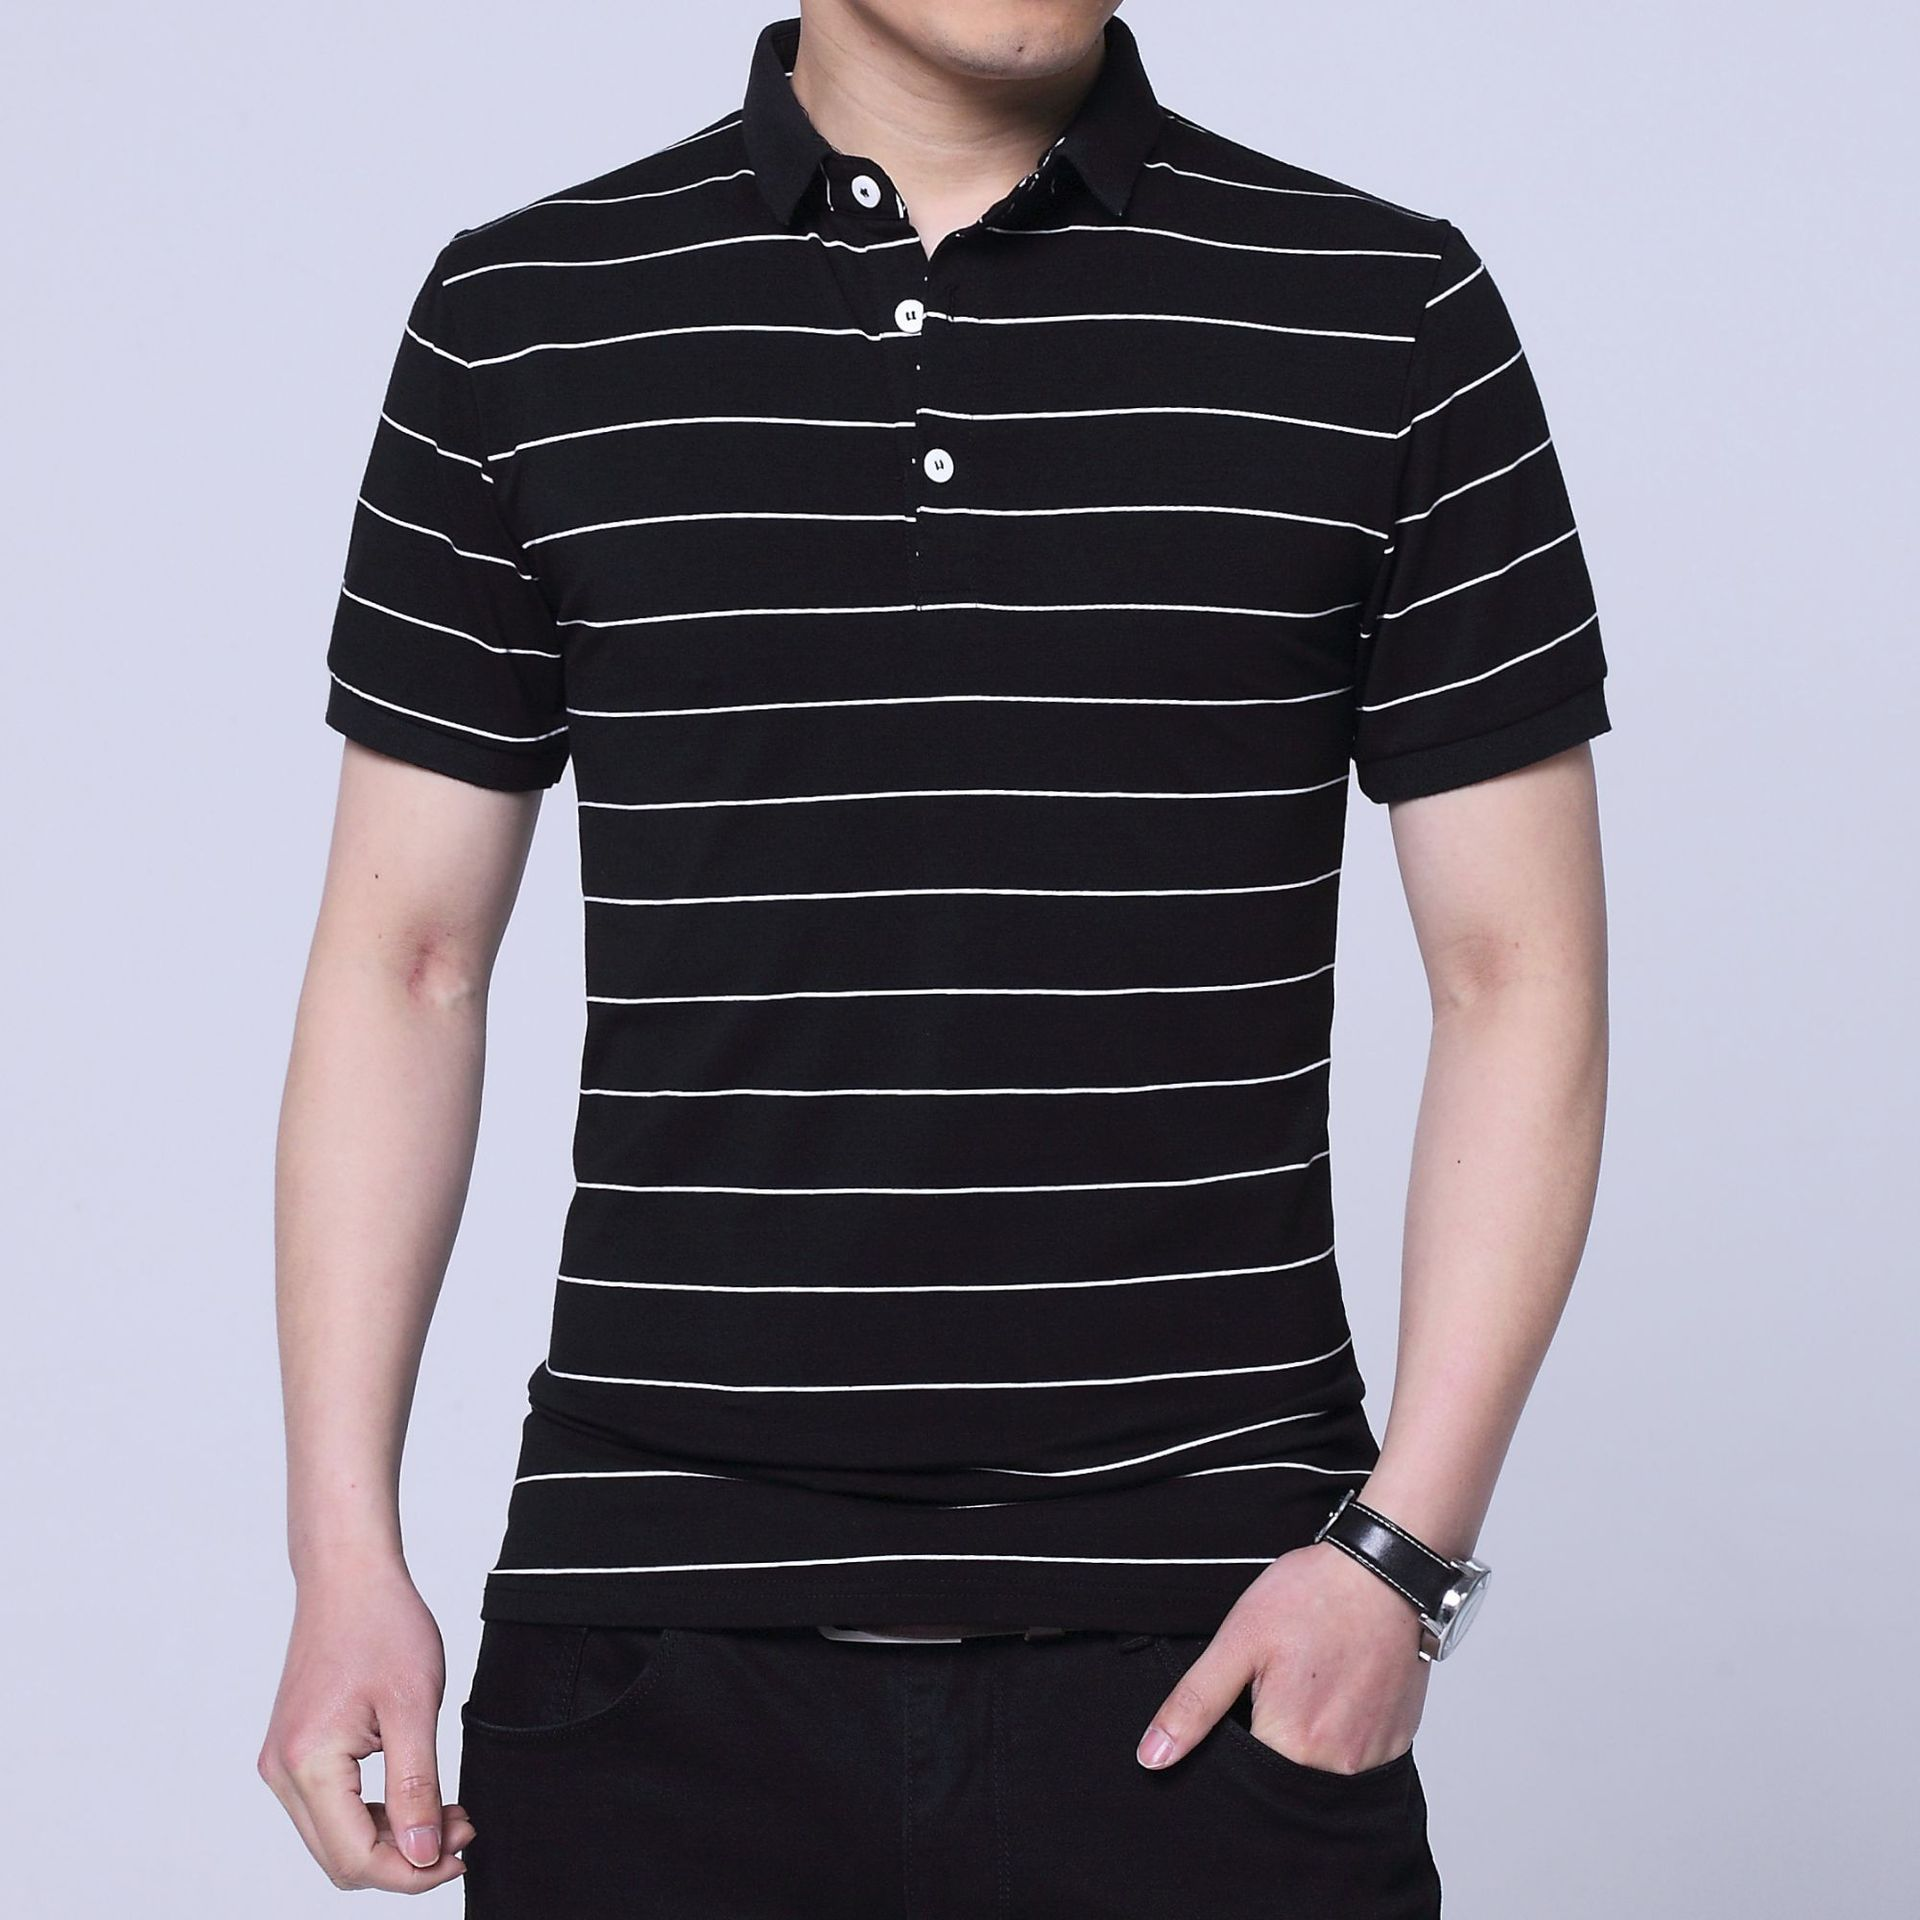 5XL Mens 2019 New Cotton   Polo   Men black and white   Polo   Shirts Slim Fit shirt Turn-down Collar Color collision Striped   Polo